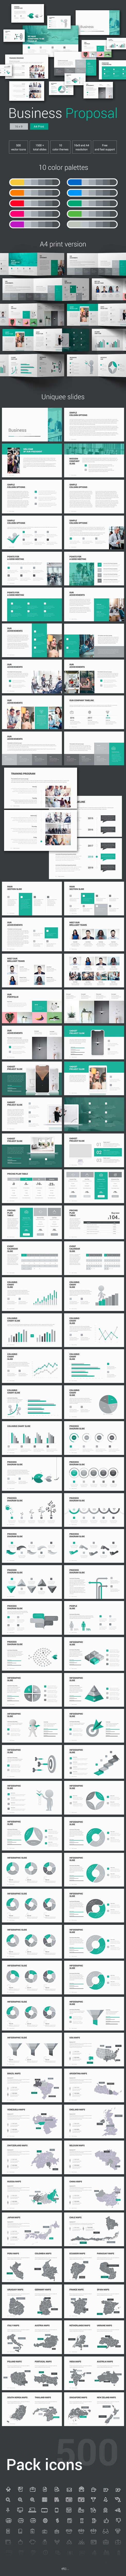 business proposal pitch powerpoint templatemalis | graphicriver, Powerpoint templates